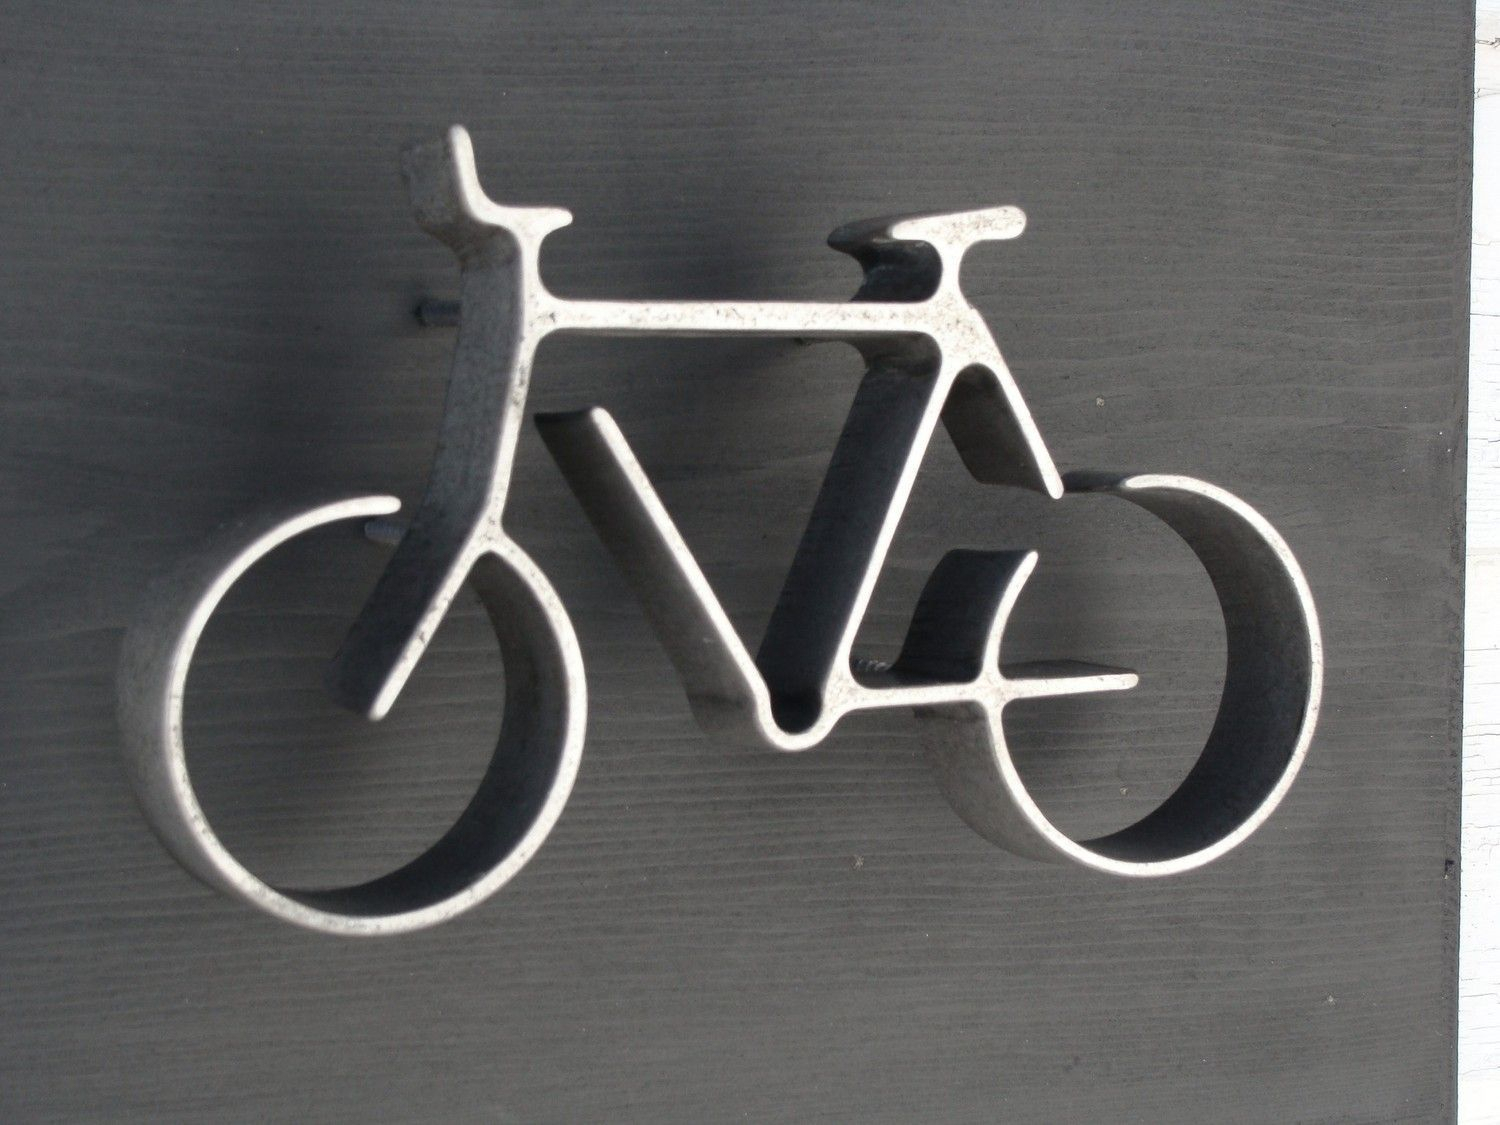 Metal Bicycle Wall Decor Inside Most Recent Metal Bicycle Wall Decor, Bike Wall Art, Home Decor Bicycle, Wall (View 10 of 20)